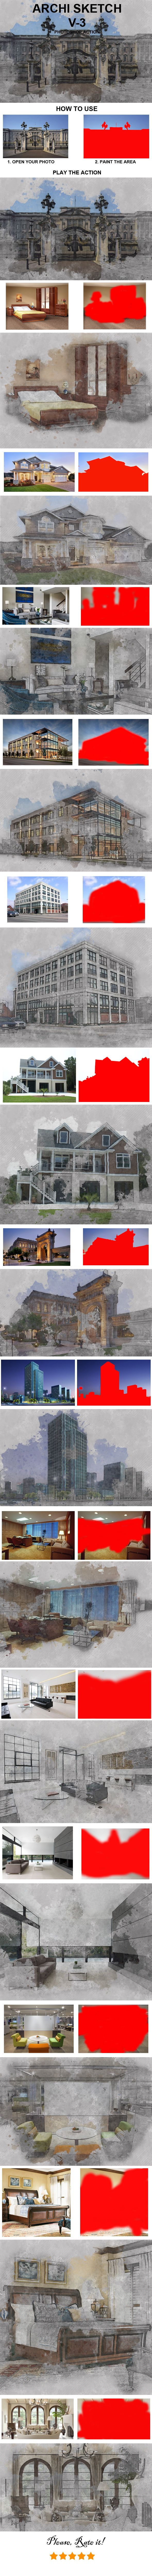 Archi Sketch Photoshop Action - Photo Effects Actions